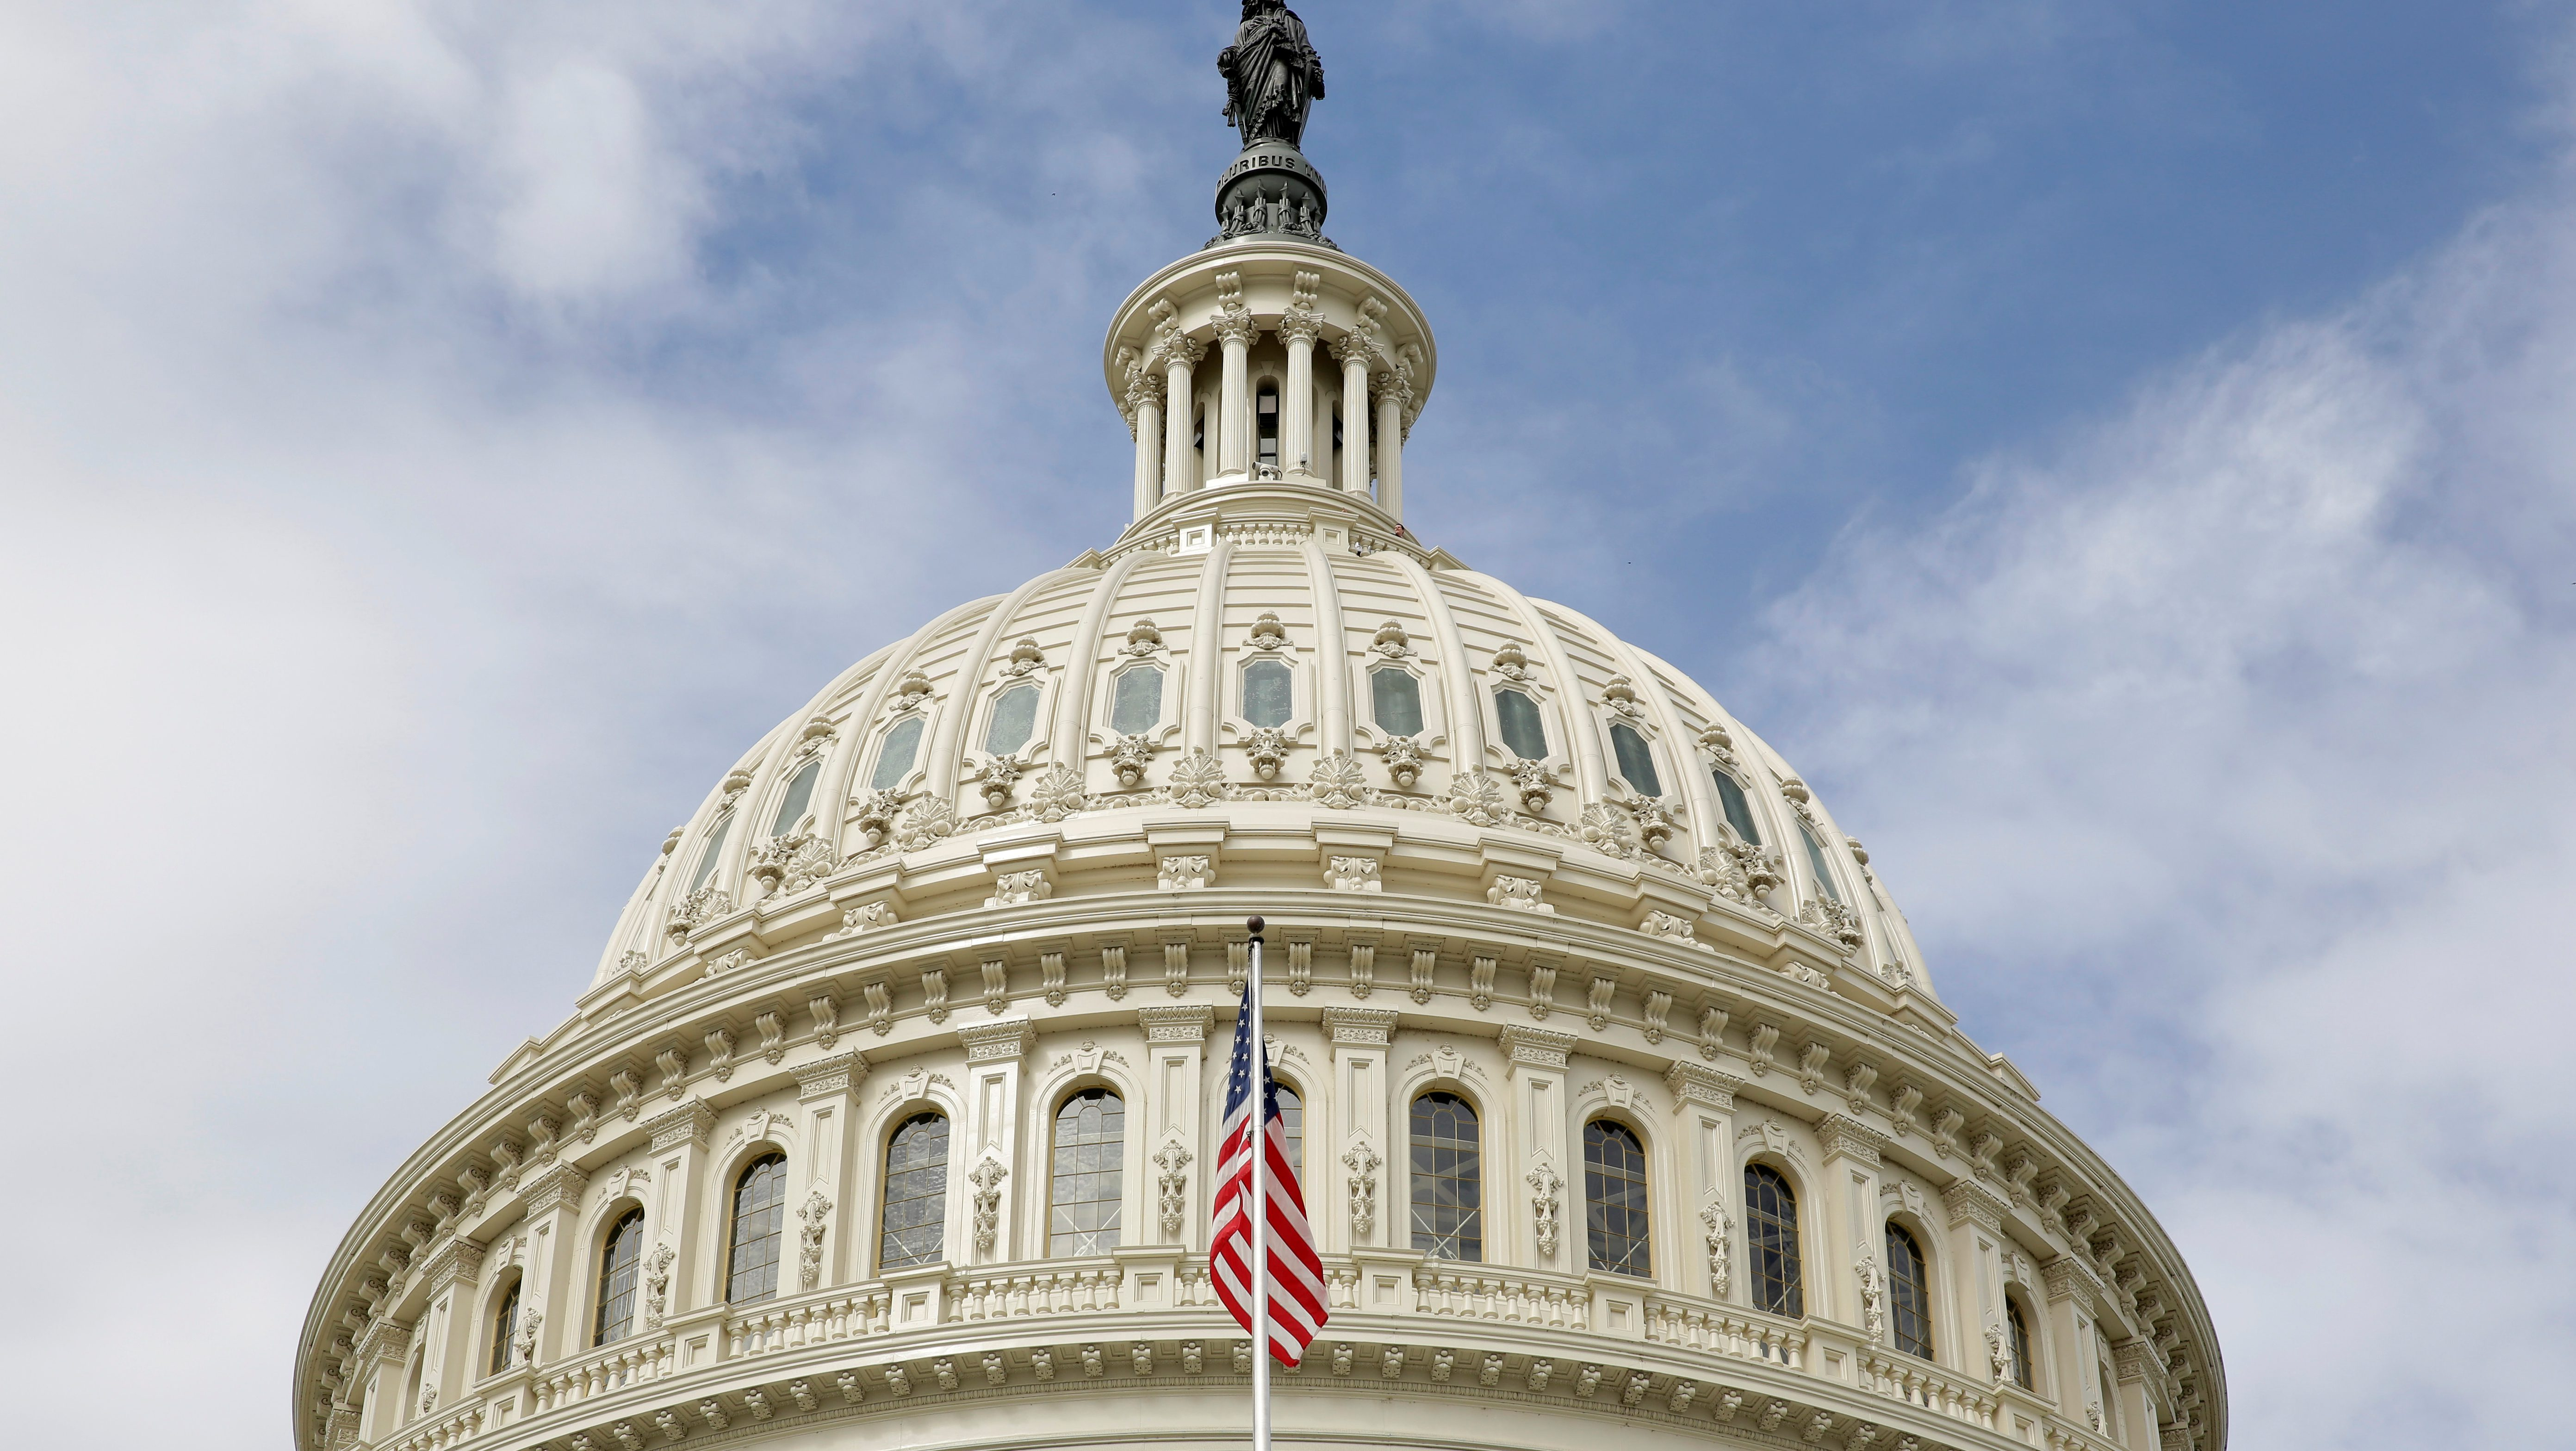 The U.S. flag flies in front of the Capitol Dome at the U.S. Capitol in Washington